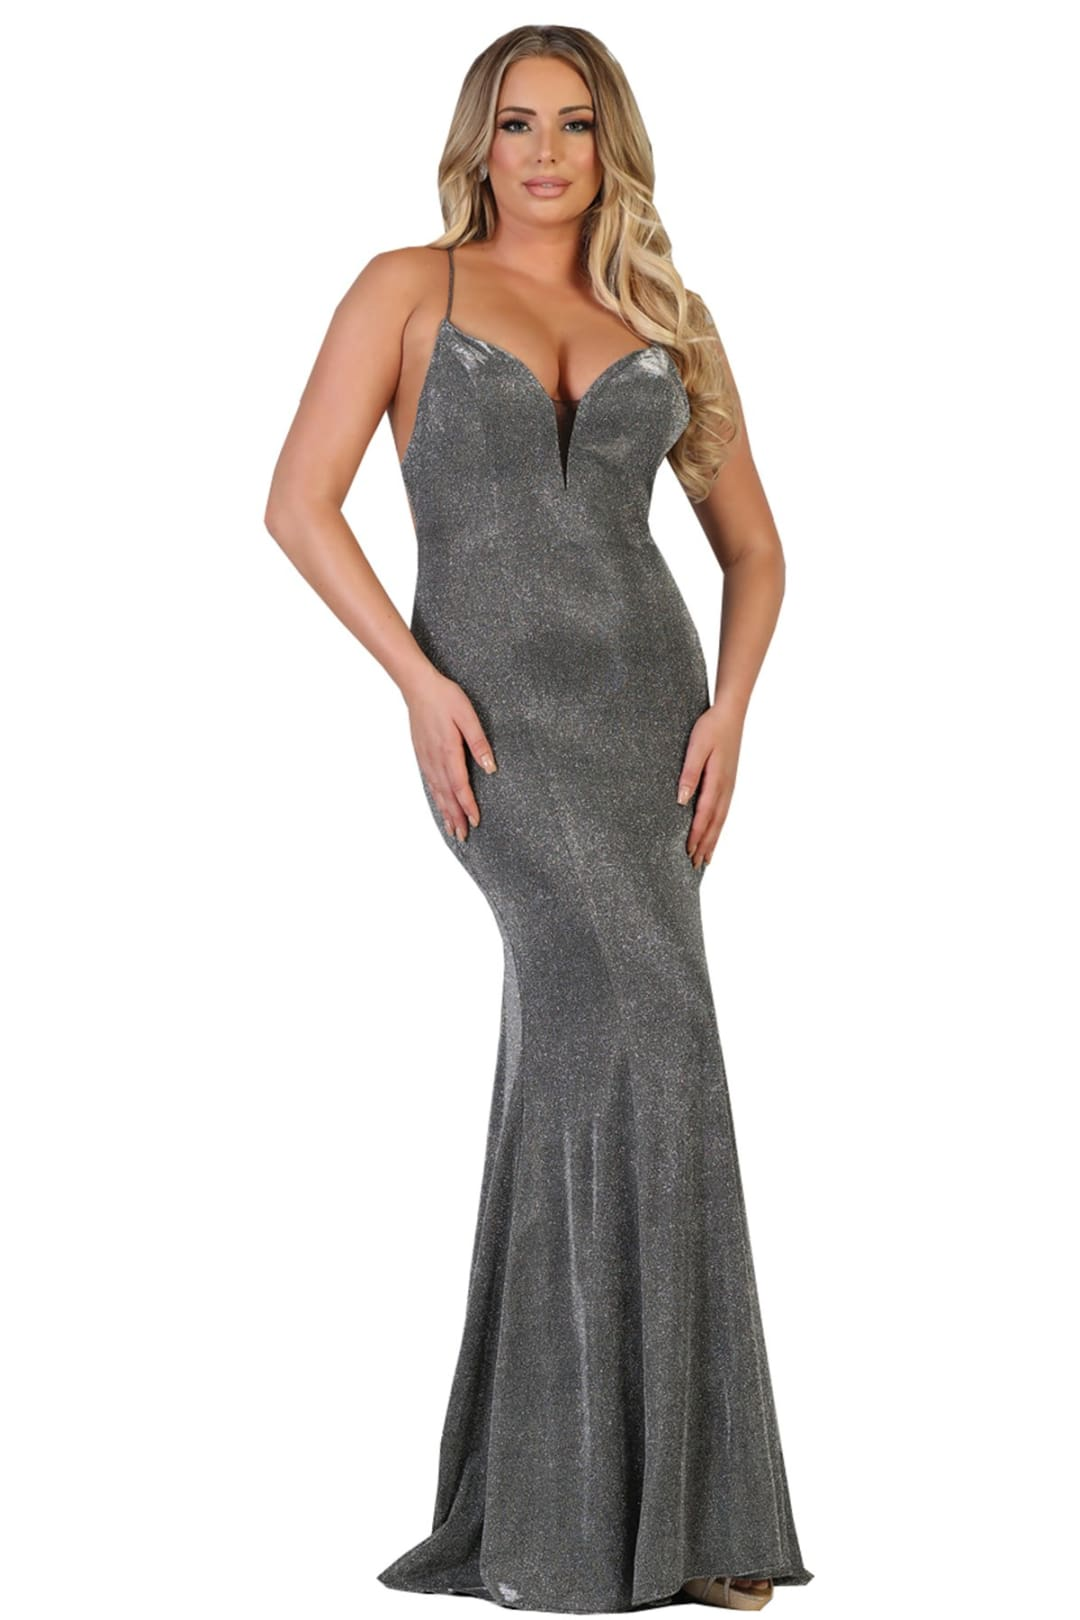 Spaghetti Strap Pageant Gown - Charcoal Gray / 2